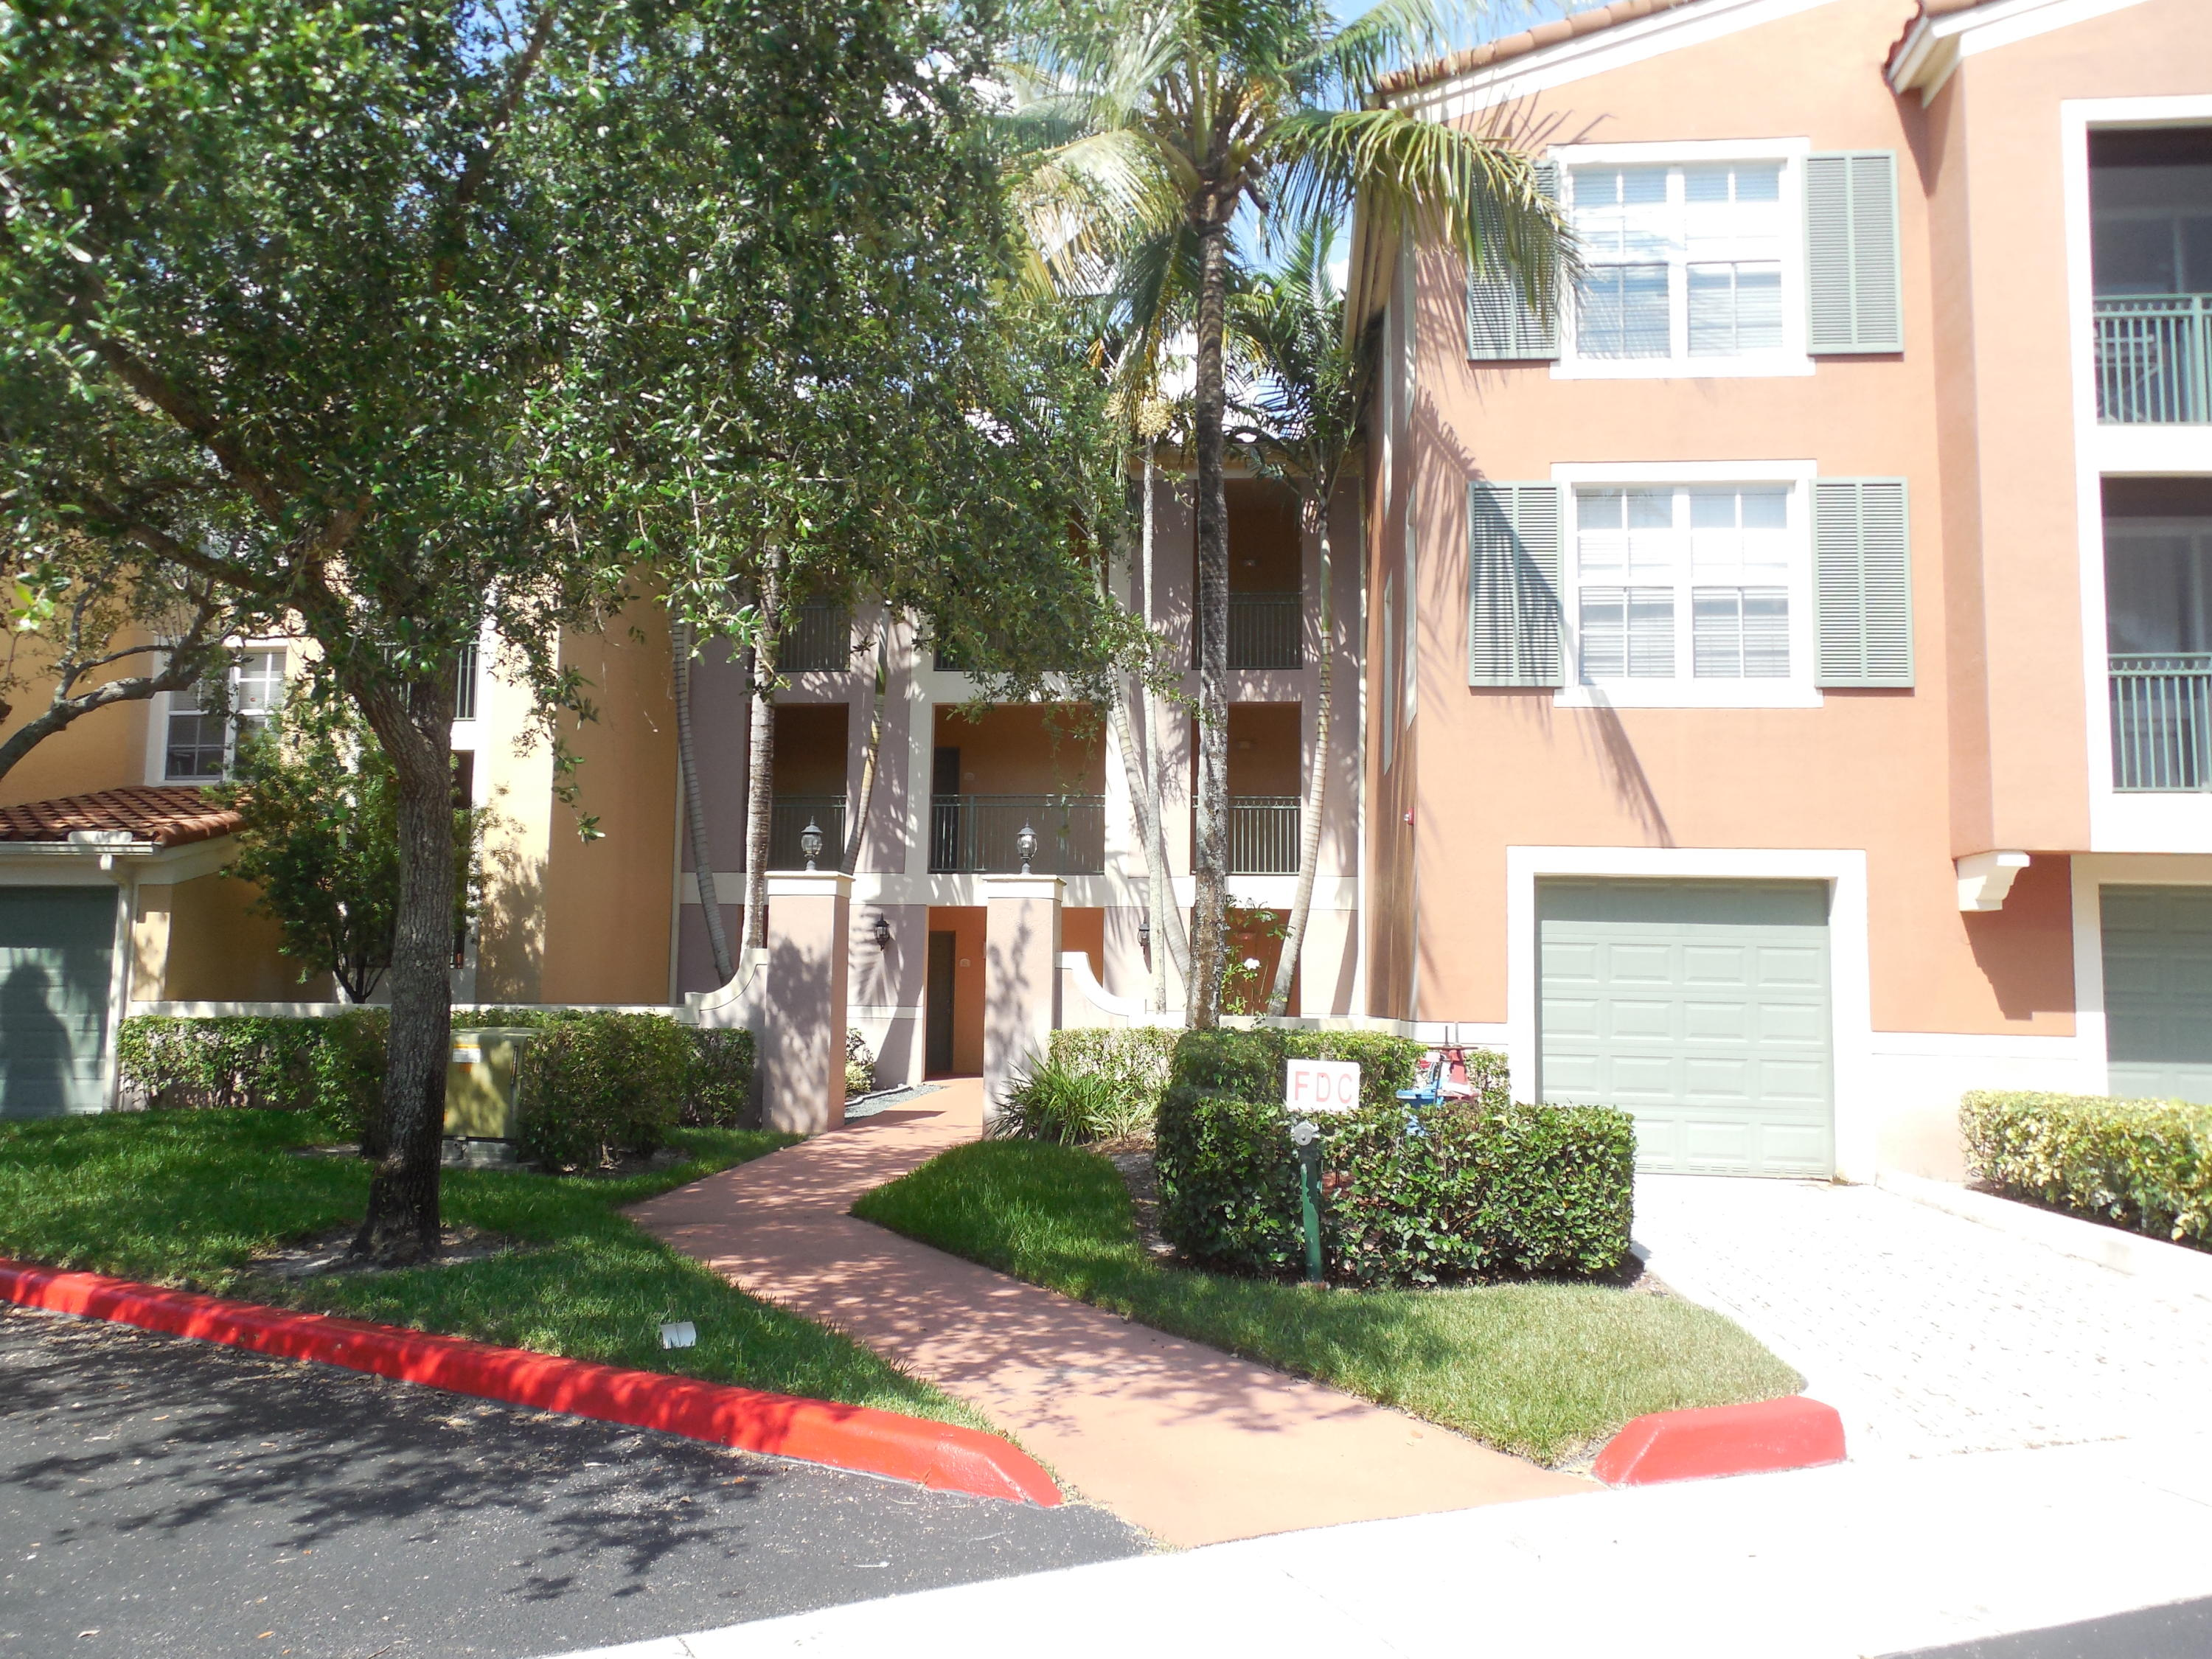 11750 Saint Andrews Place, Wellington, Florida 33414, 2 Bedrooms Bedrooms, ,2 BathroomsBathrooms,Condo/Coop,For Rent,St Andrews at Polo Club,Saint Andrews,3,RX-10487832